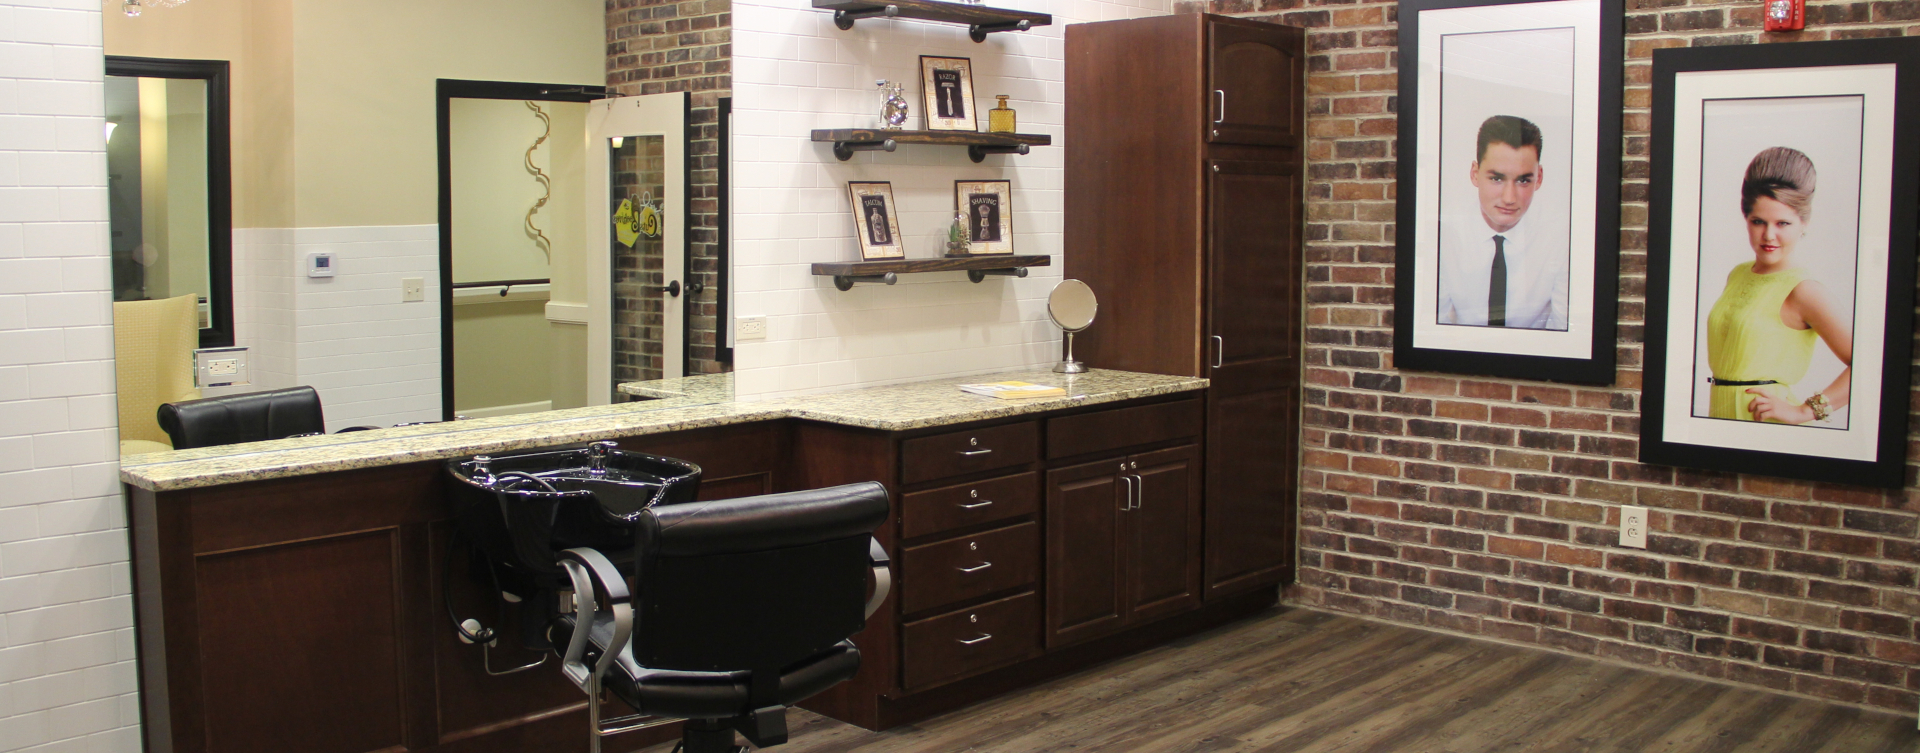 Receive personalized, at-home treatment from our stylist in the salon at Bickford of Tinley Park